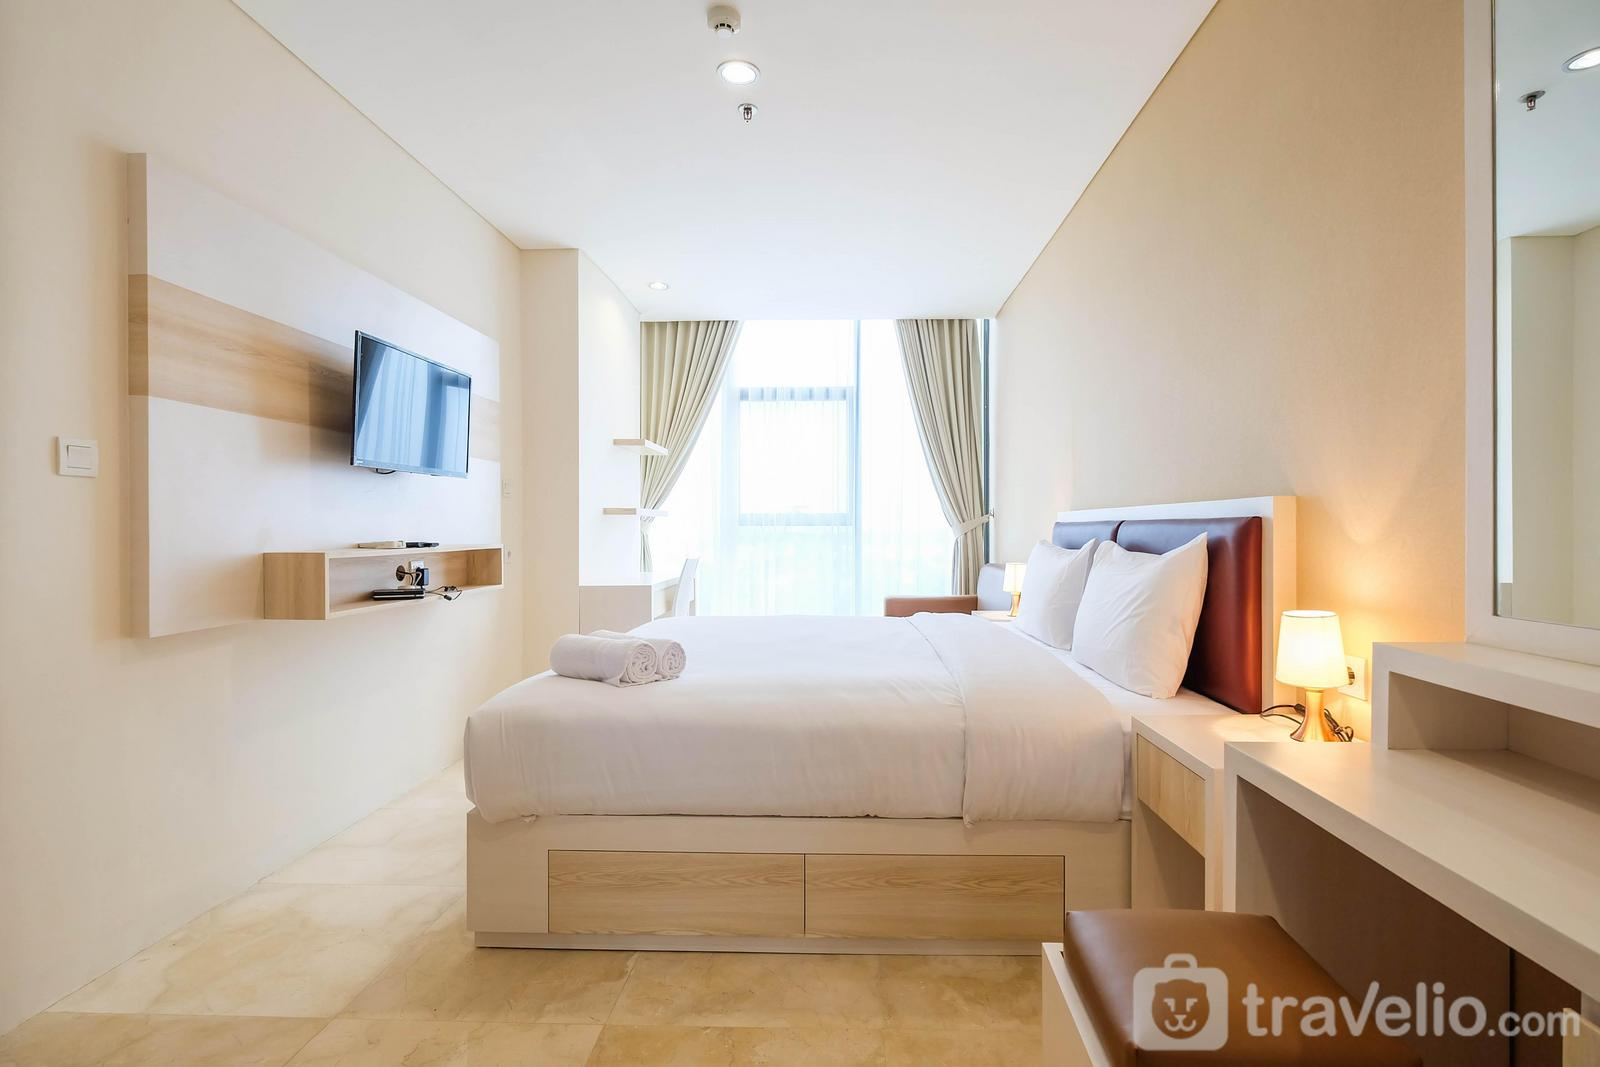 Lavenue Apartemen Pancoran - 2BR Cozy and Modern L'Avenue Apartment By Travelio